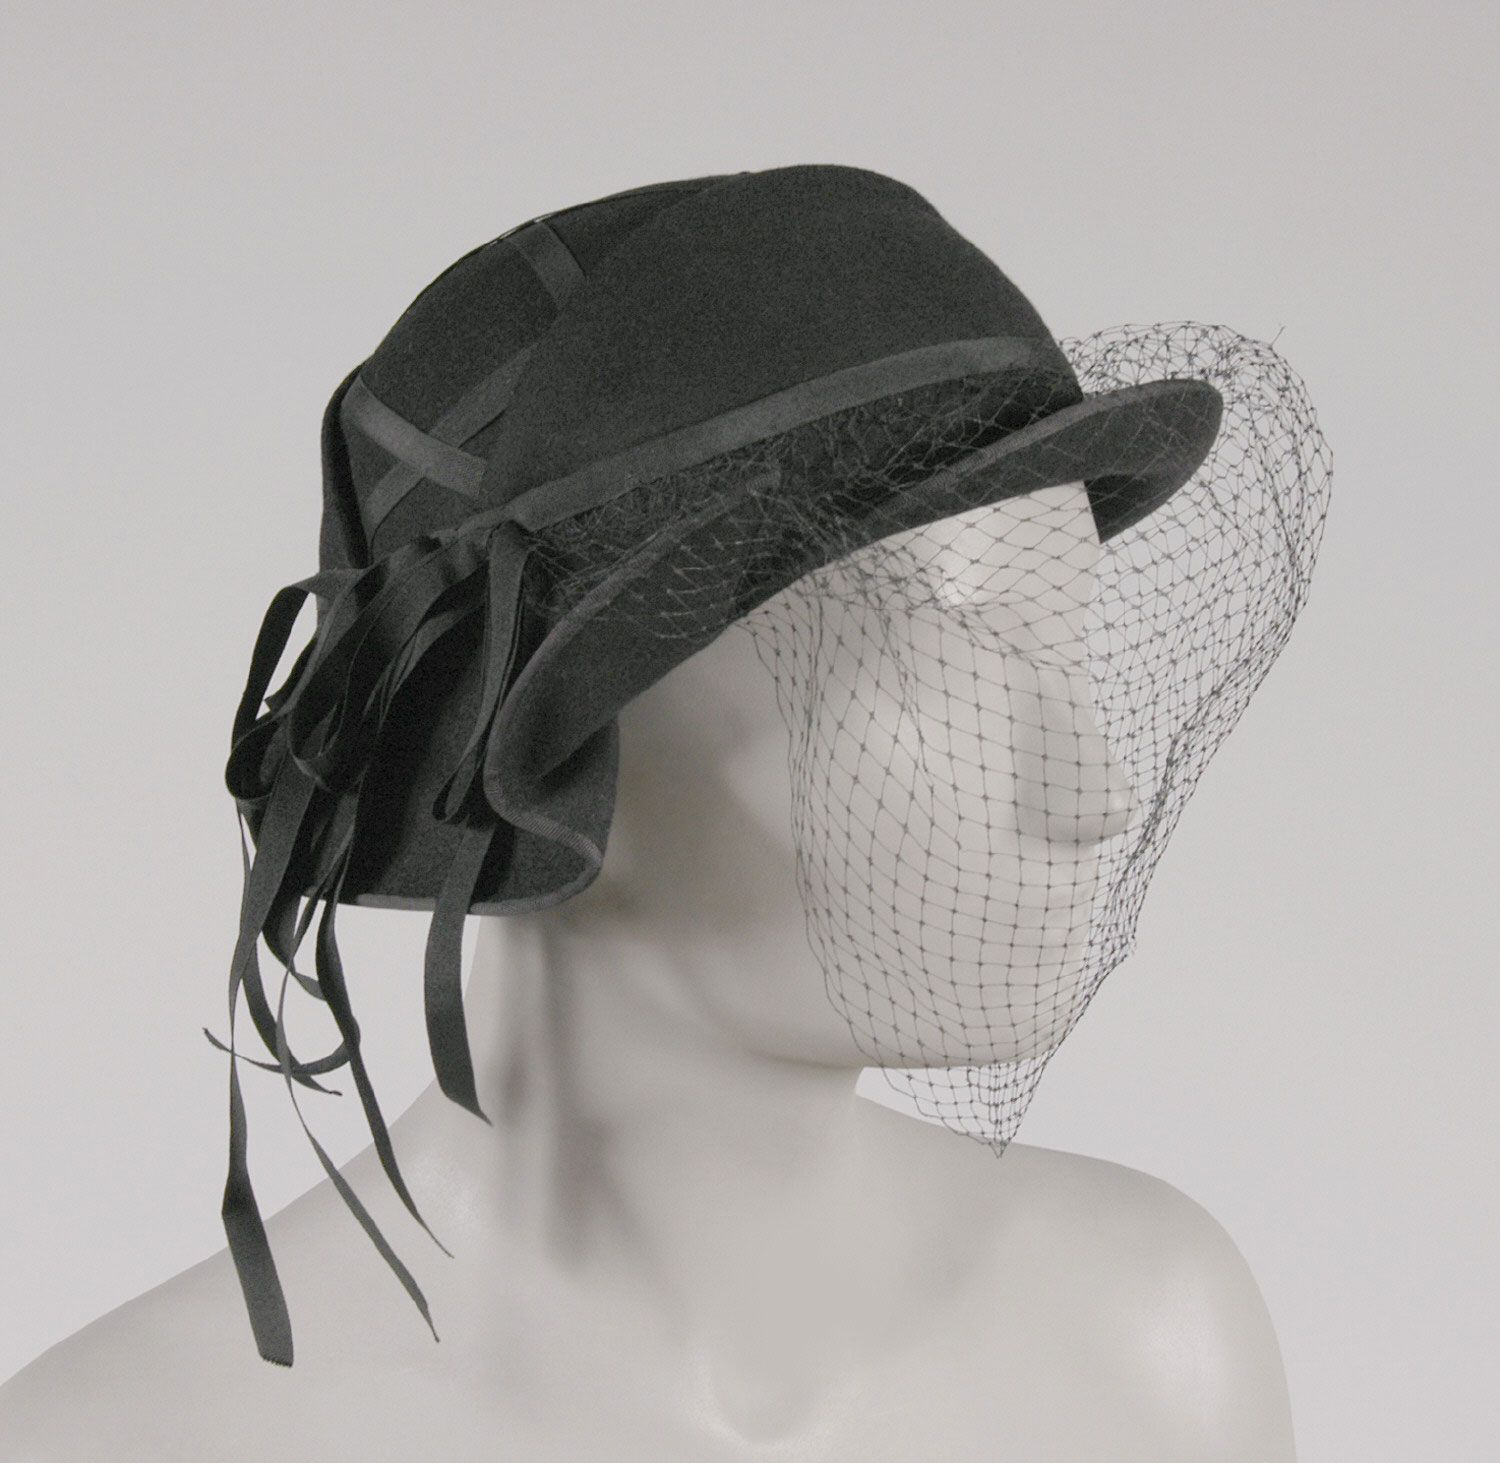 Attrayant 1940 1950s, America   Hat With Hat Pin By Salon Moderne, Saks Fifth Avenue,  New York   Black Wool Felt, Grosgrain Ribbon, Veiling